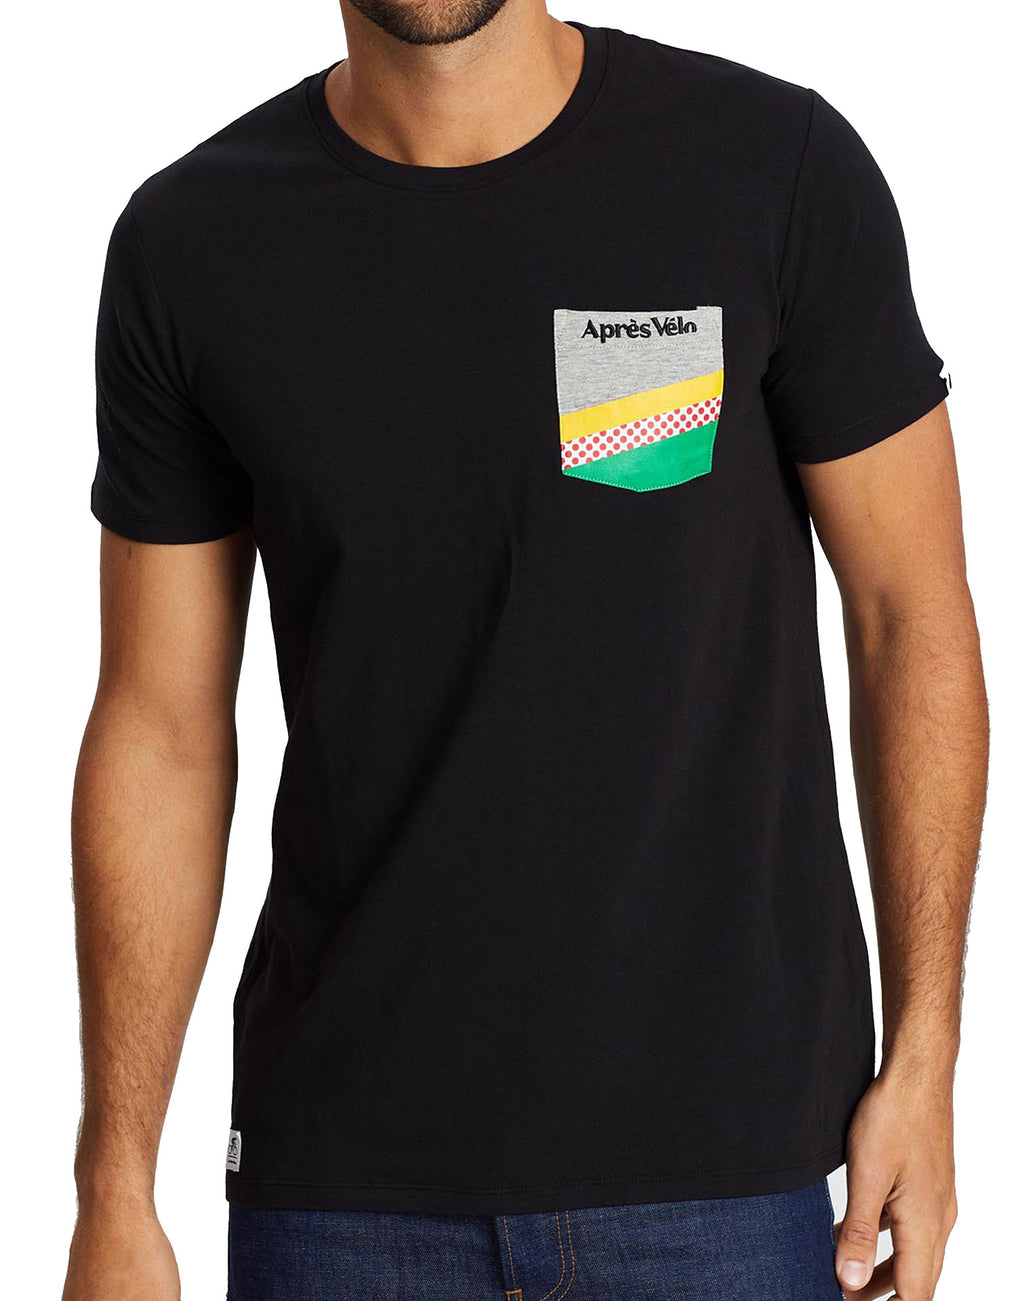 Tour de France Pocket T-Shirt